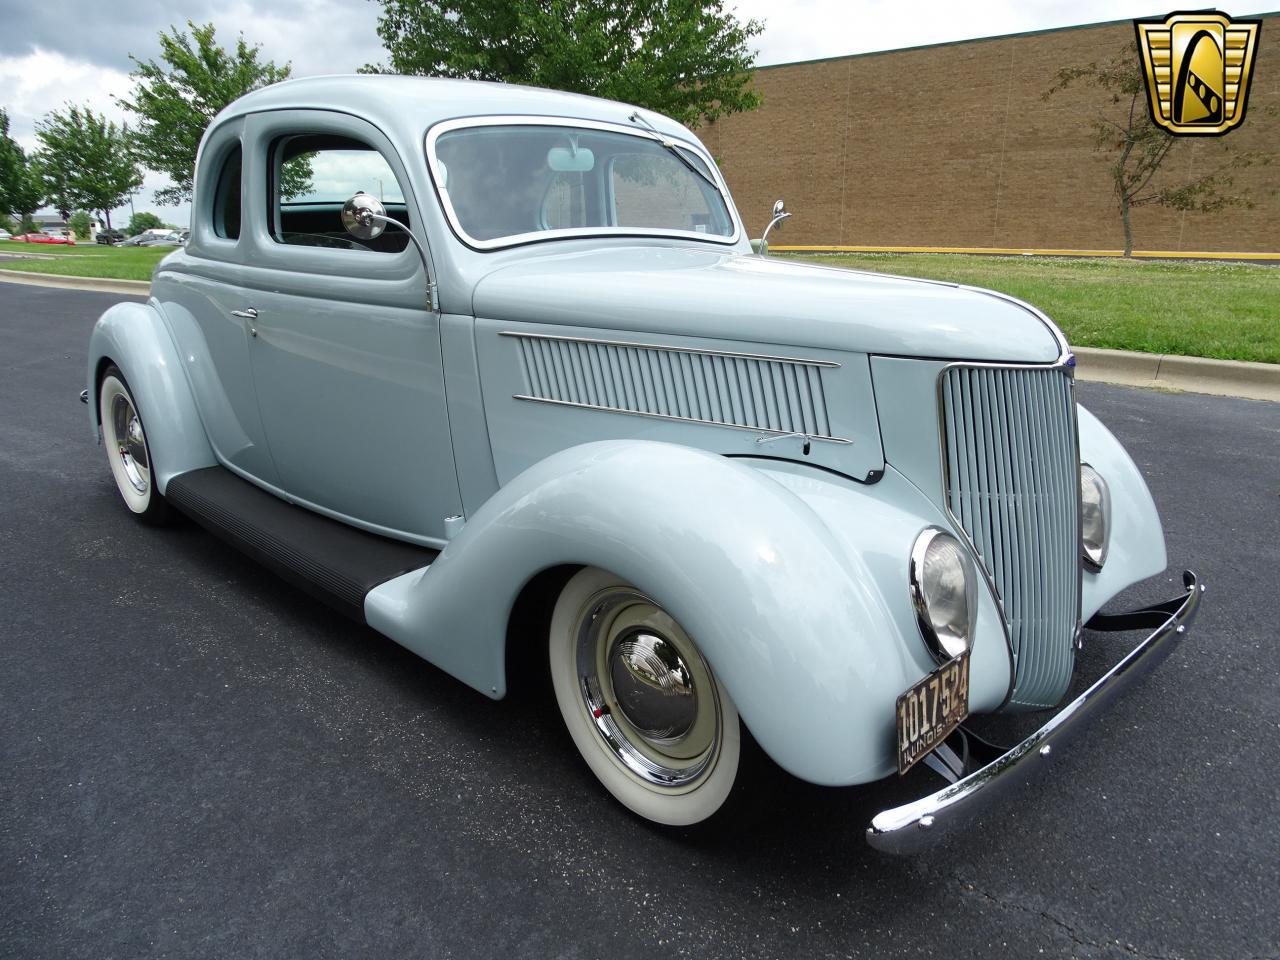 Large Picture of Classic 1936 Ford 5-Window Coupe located in O'Fallon Illinois - $57,000.00 Offered by Gateway Classic Cars - St. Louis - LED7